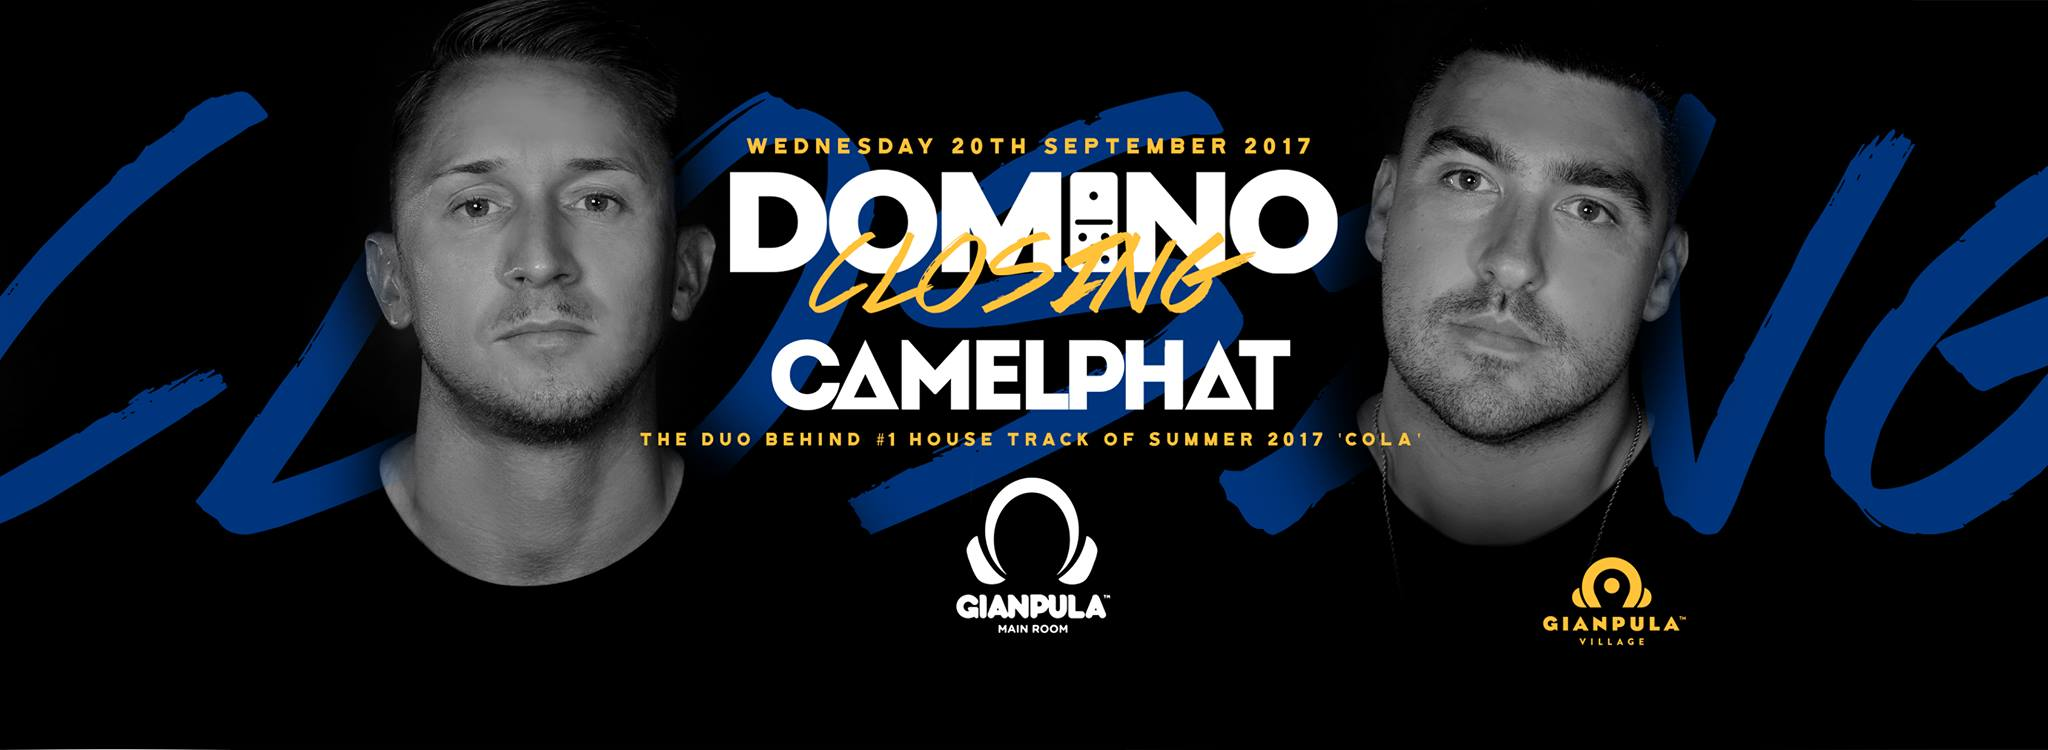 Domino Closing Feat. Camelphat